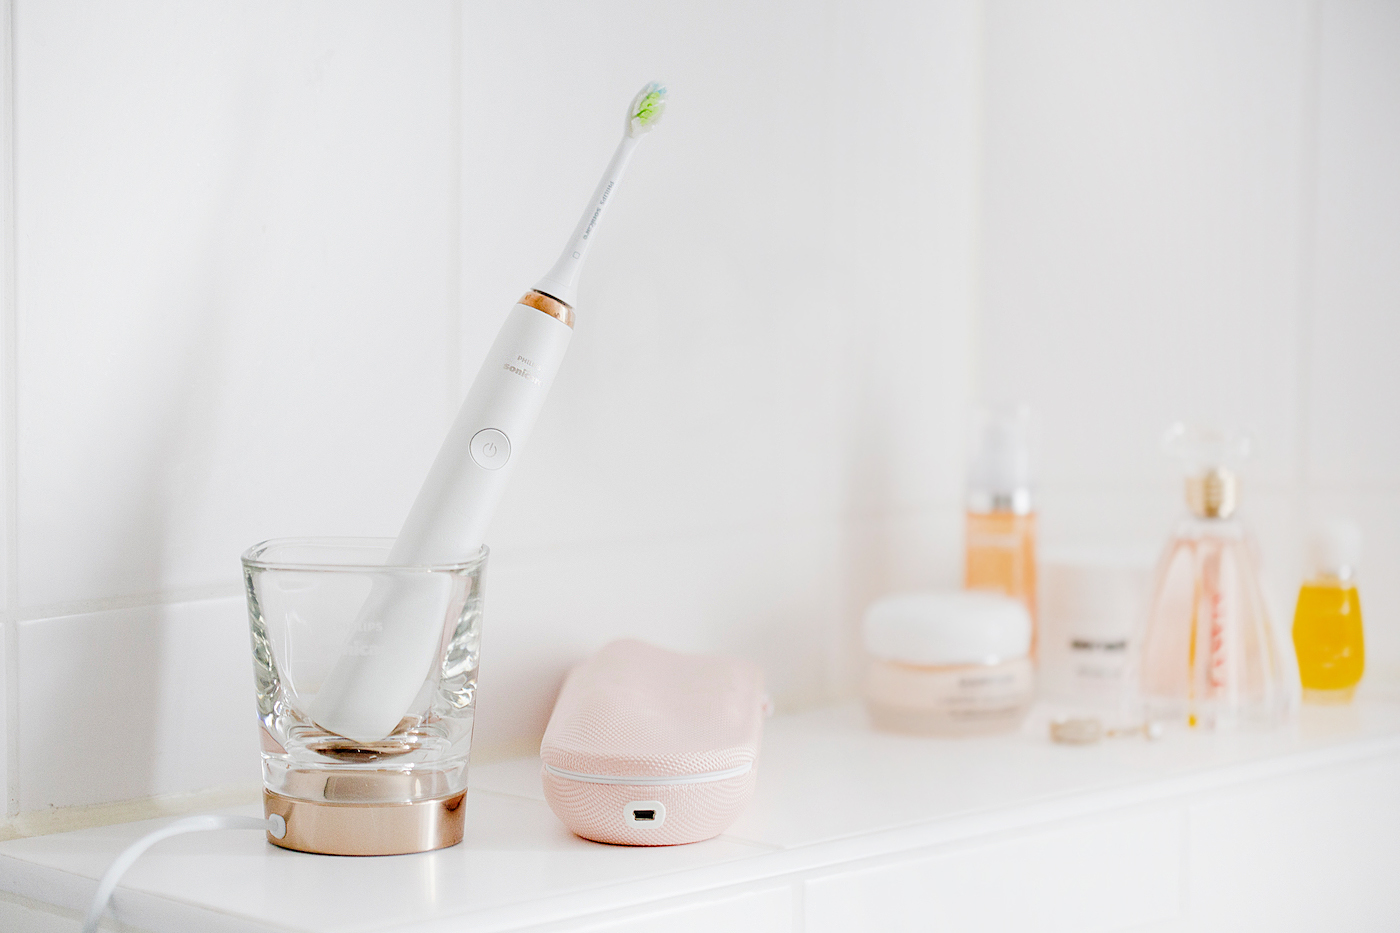 philips sonicare rosegold | zahnspange als erwachsener update Zahnspange als Erwachsener Erfahrungsbericht, braces for adults experience